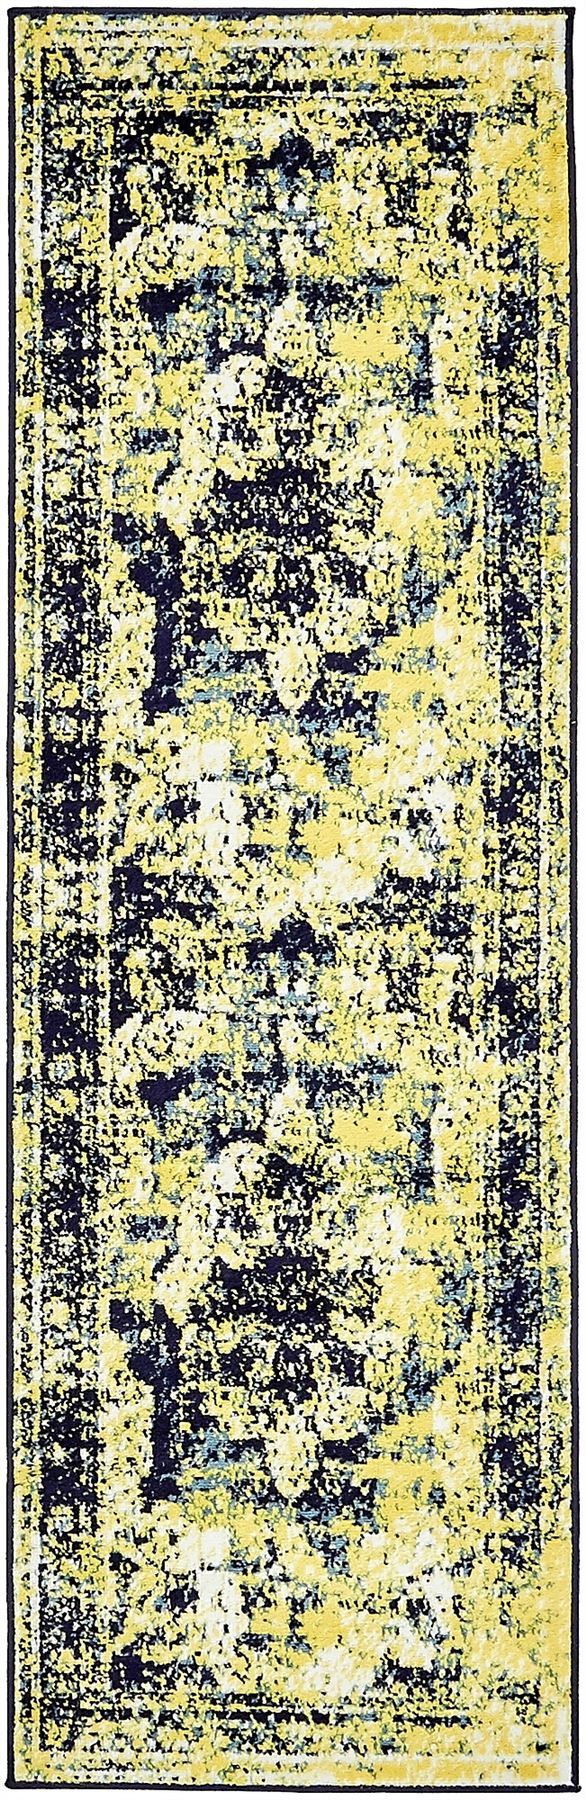 Traditional-Inspired-Persian-Faded-Transitional-Area-Rug-Multi-Color-ALL-SIZES thumbnail 38